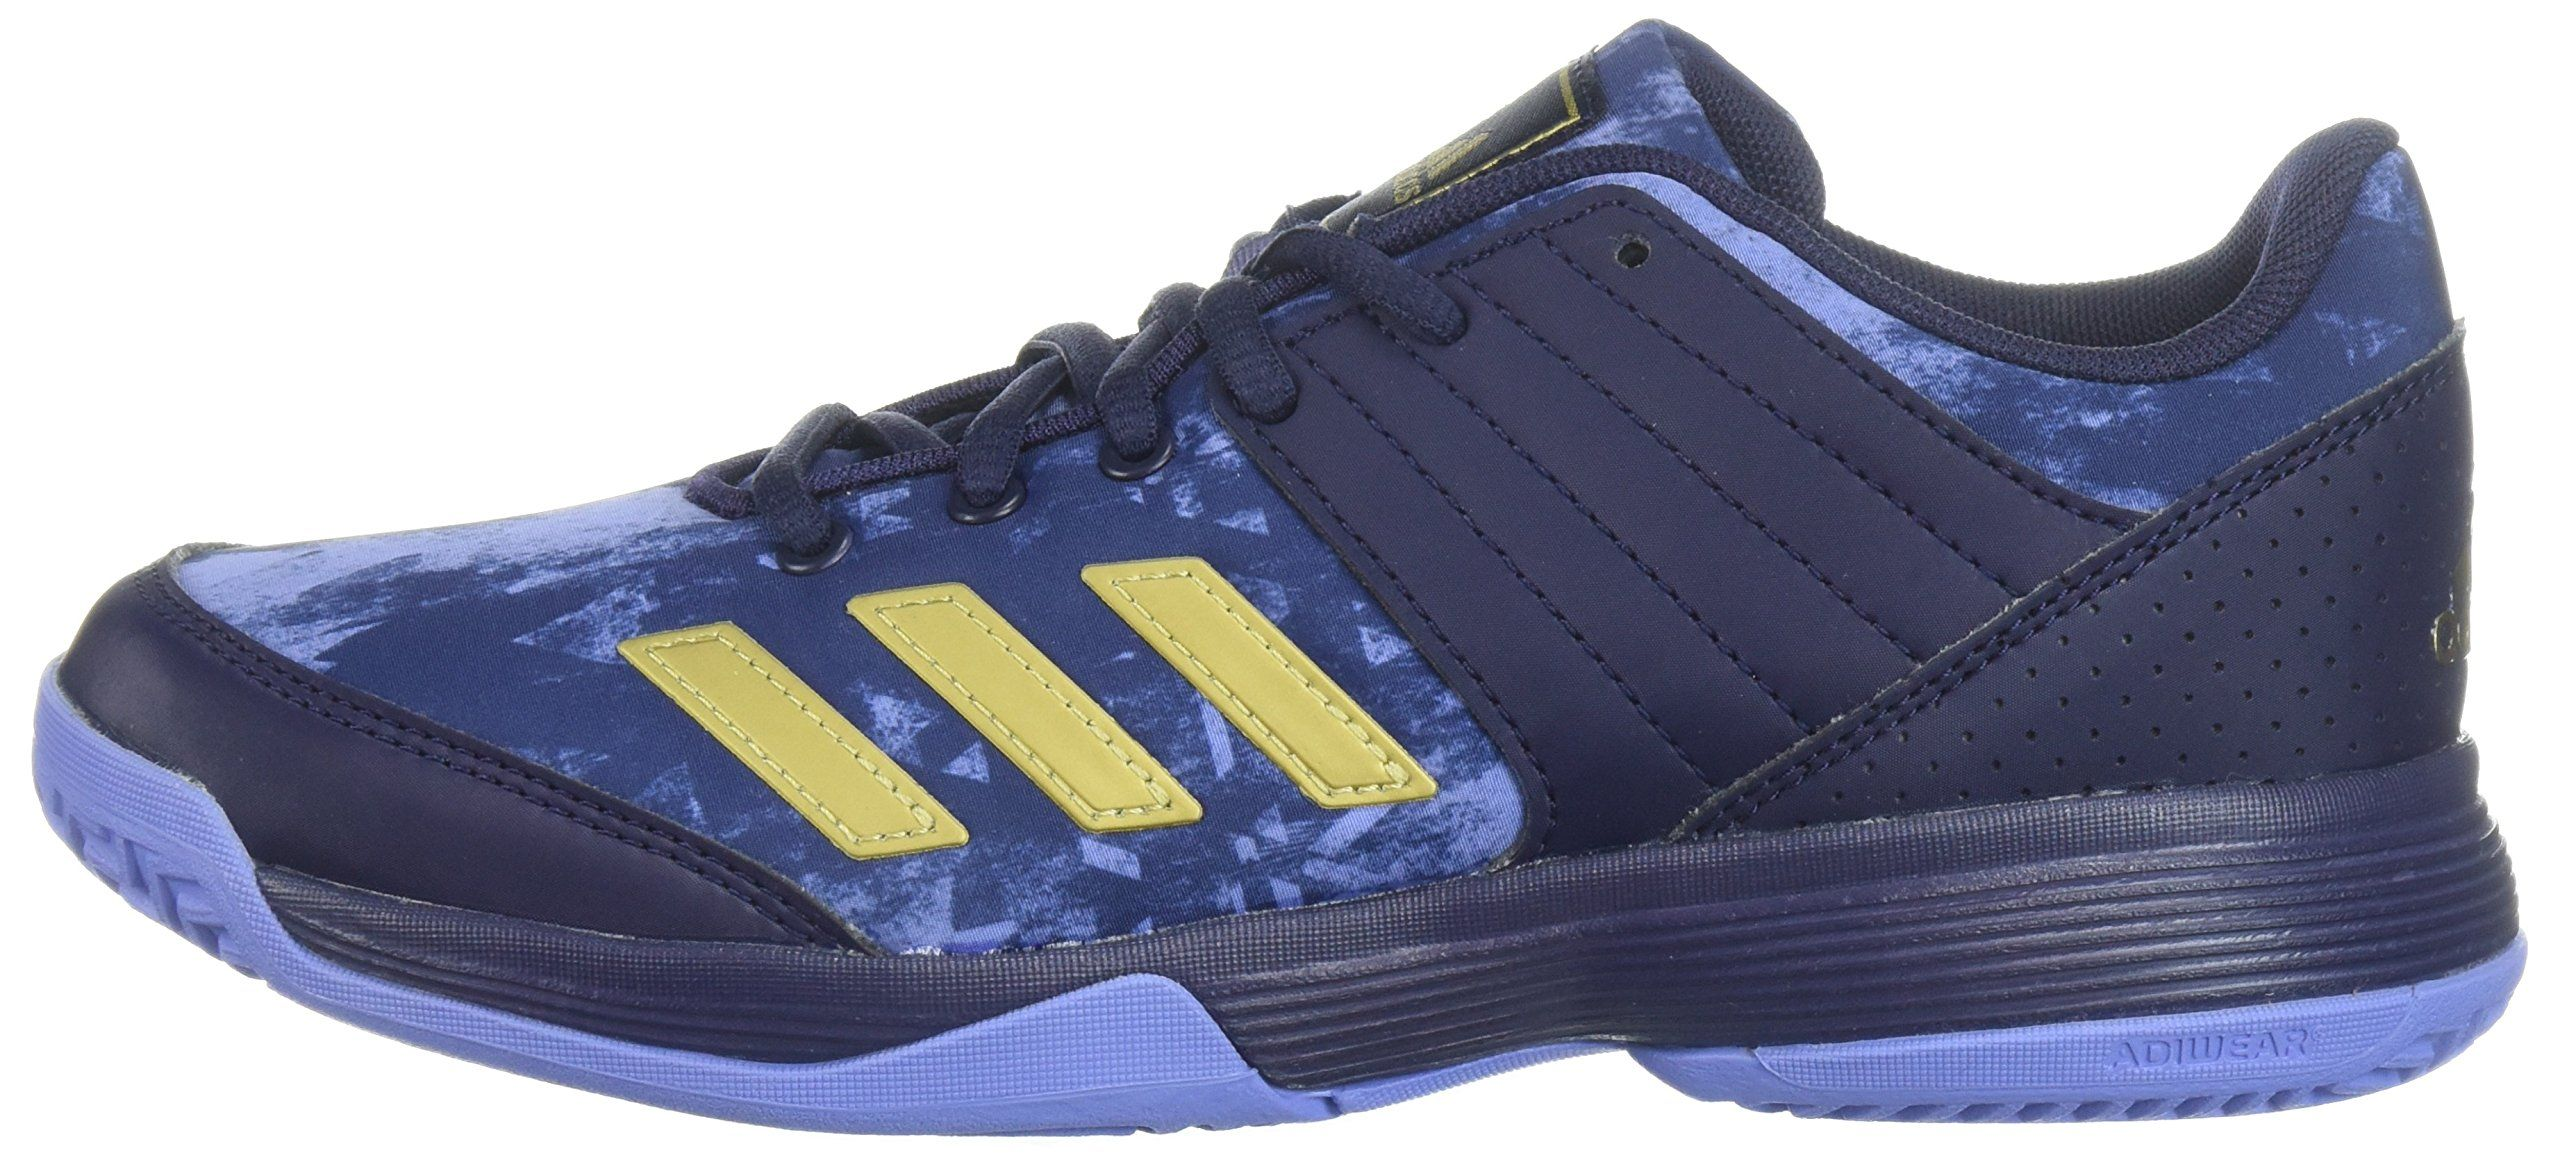 Adidas Performance Womens Ligra 5 W Volleyball Shoe Noble Ink Metallic Gold Chalk Purple 11 M Us Click Image For More Details Volleyball Shoes Shoes Running Shoes